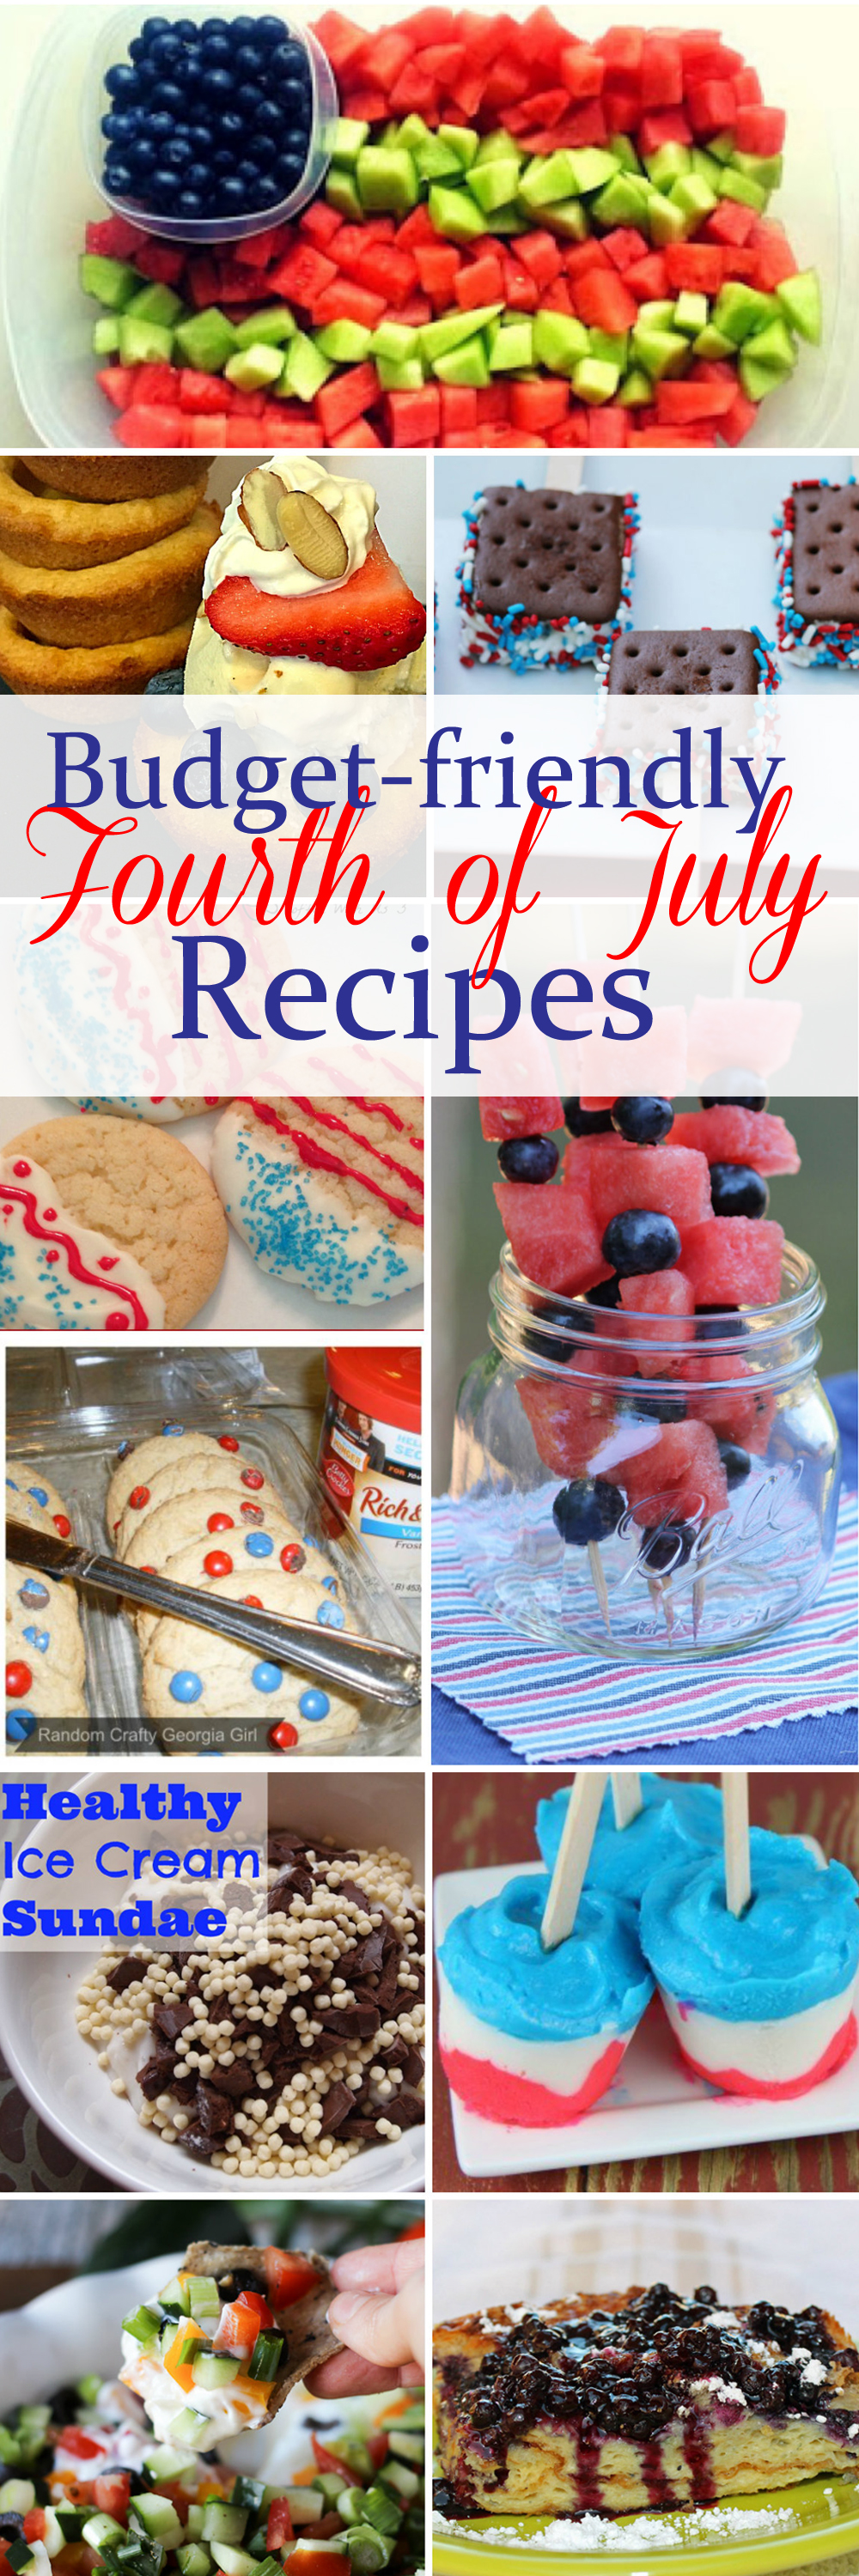 Budget Friendly Fourth of July Recipes